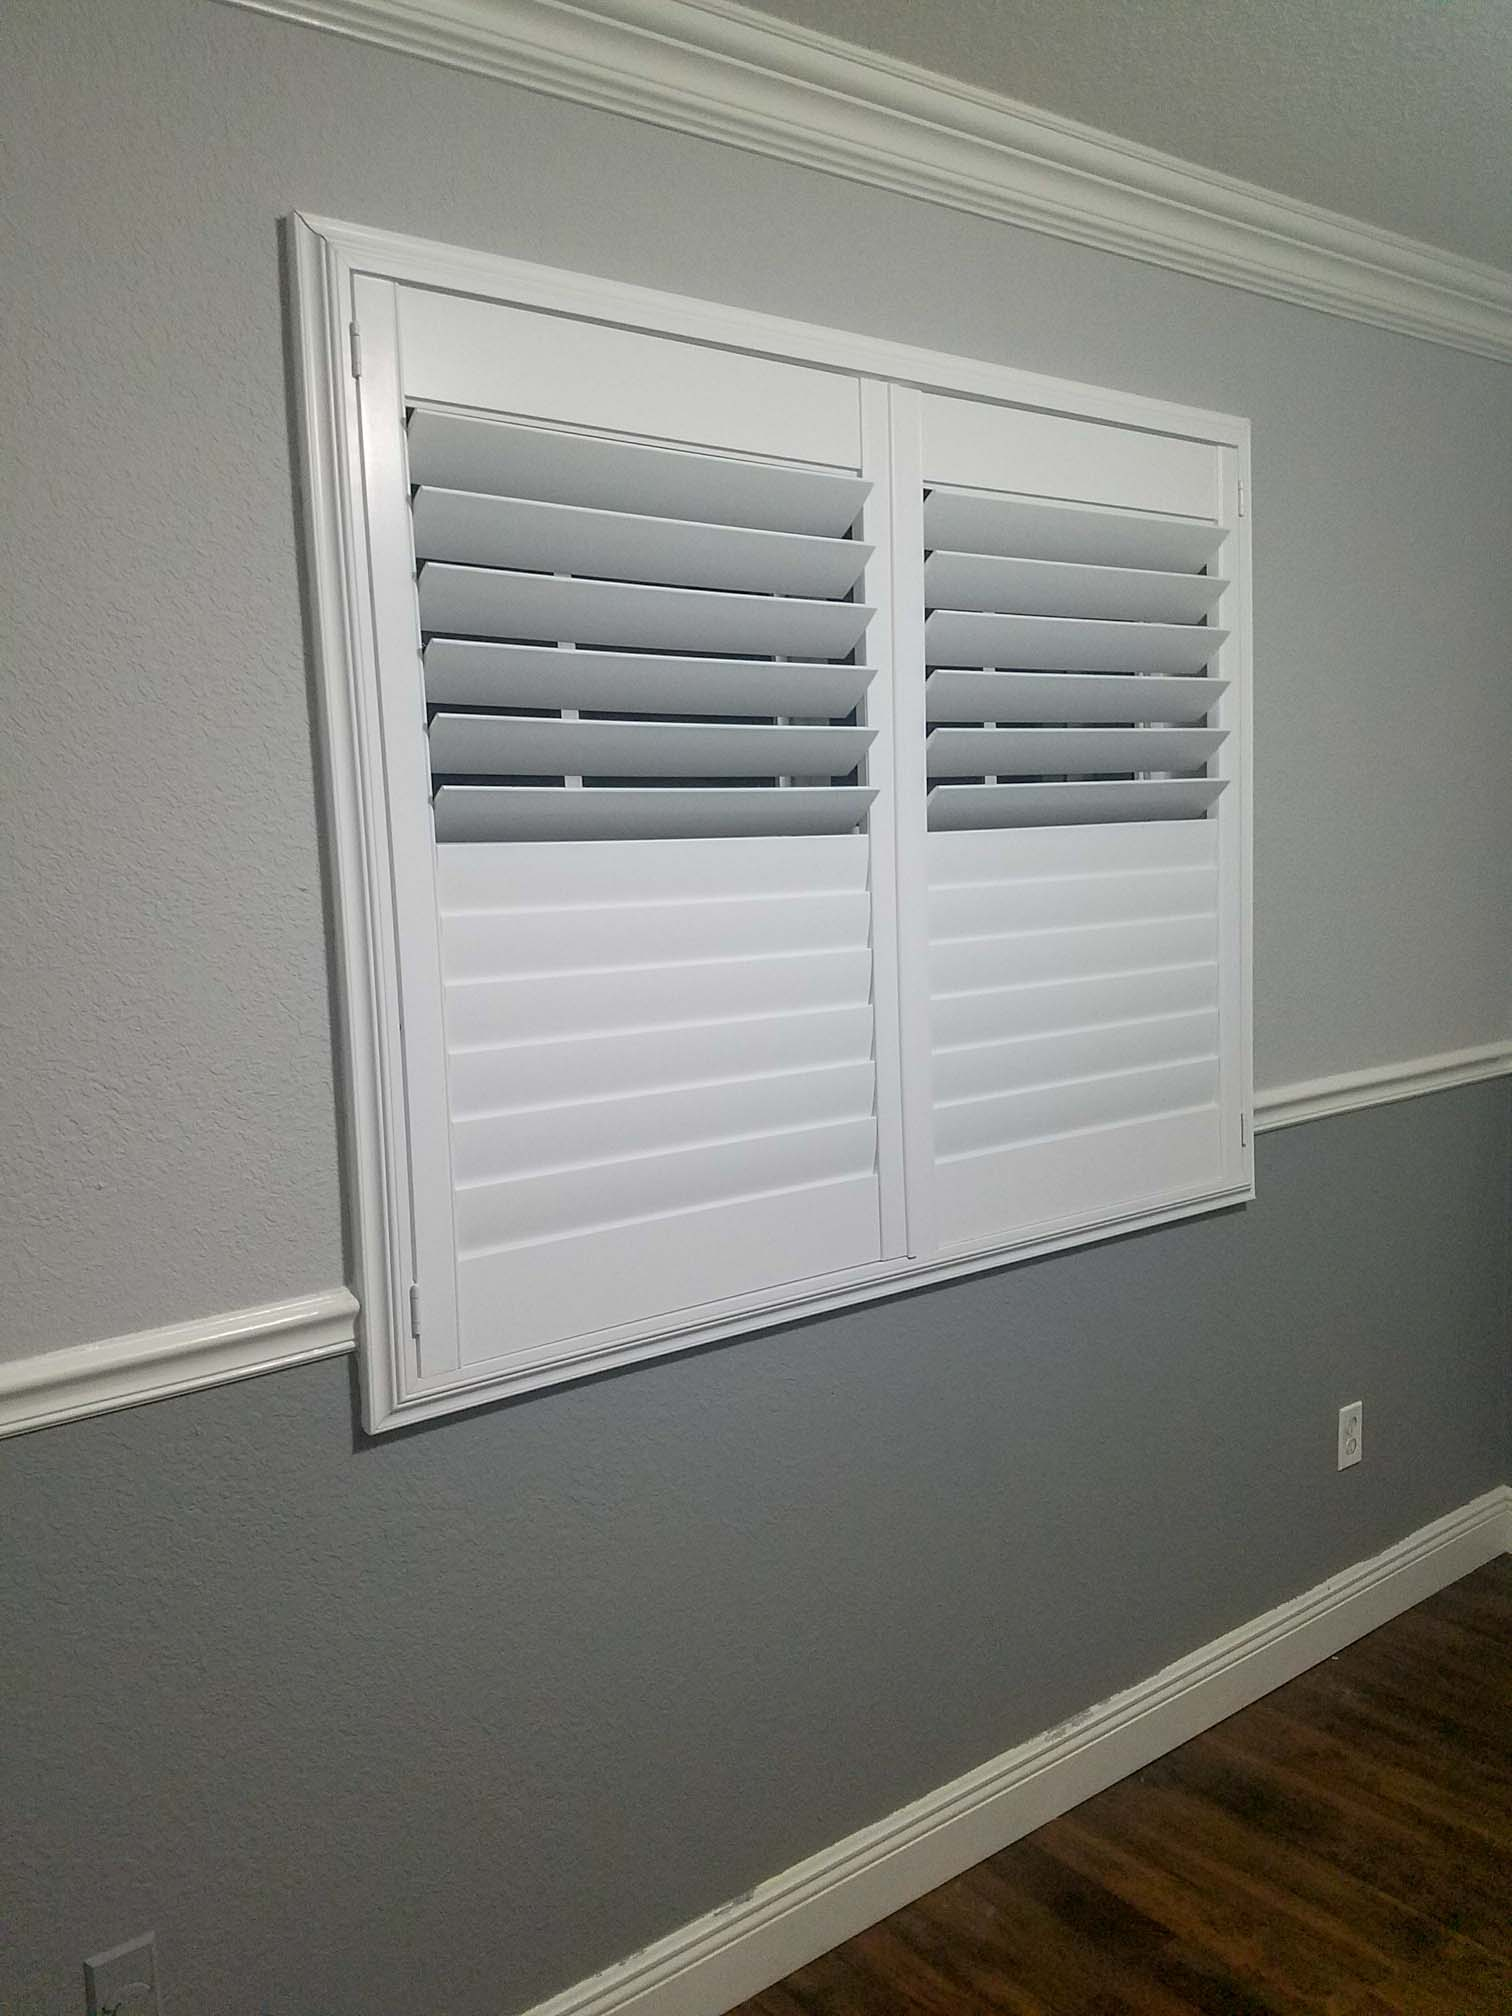 plantation shutters gallery PLANTATION SHUTTERS GALLERY 20180304 204442